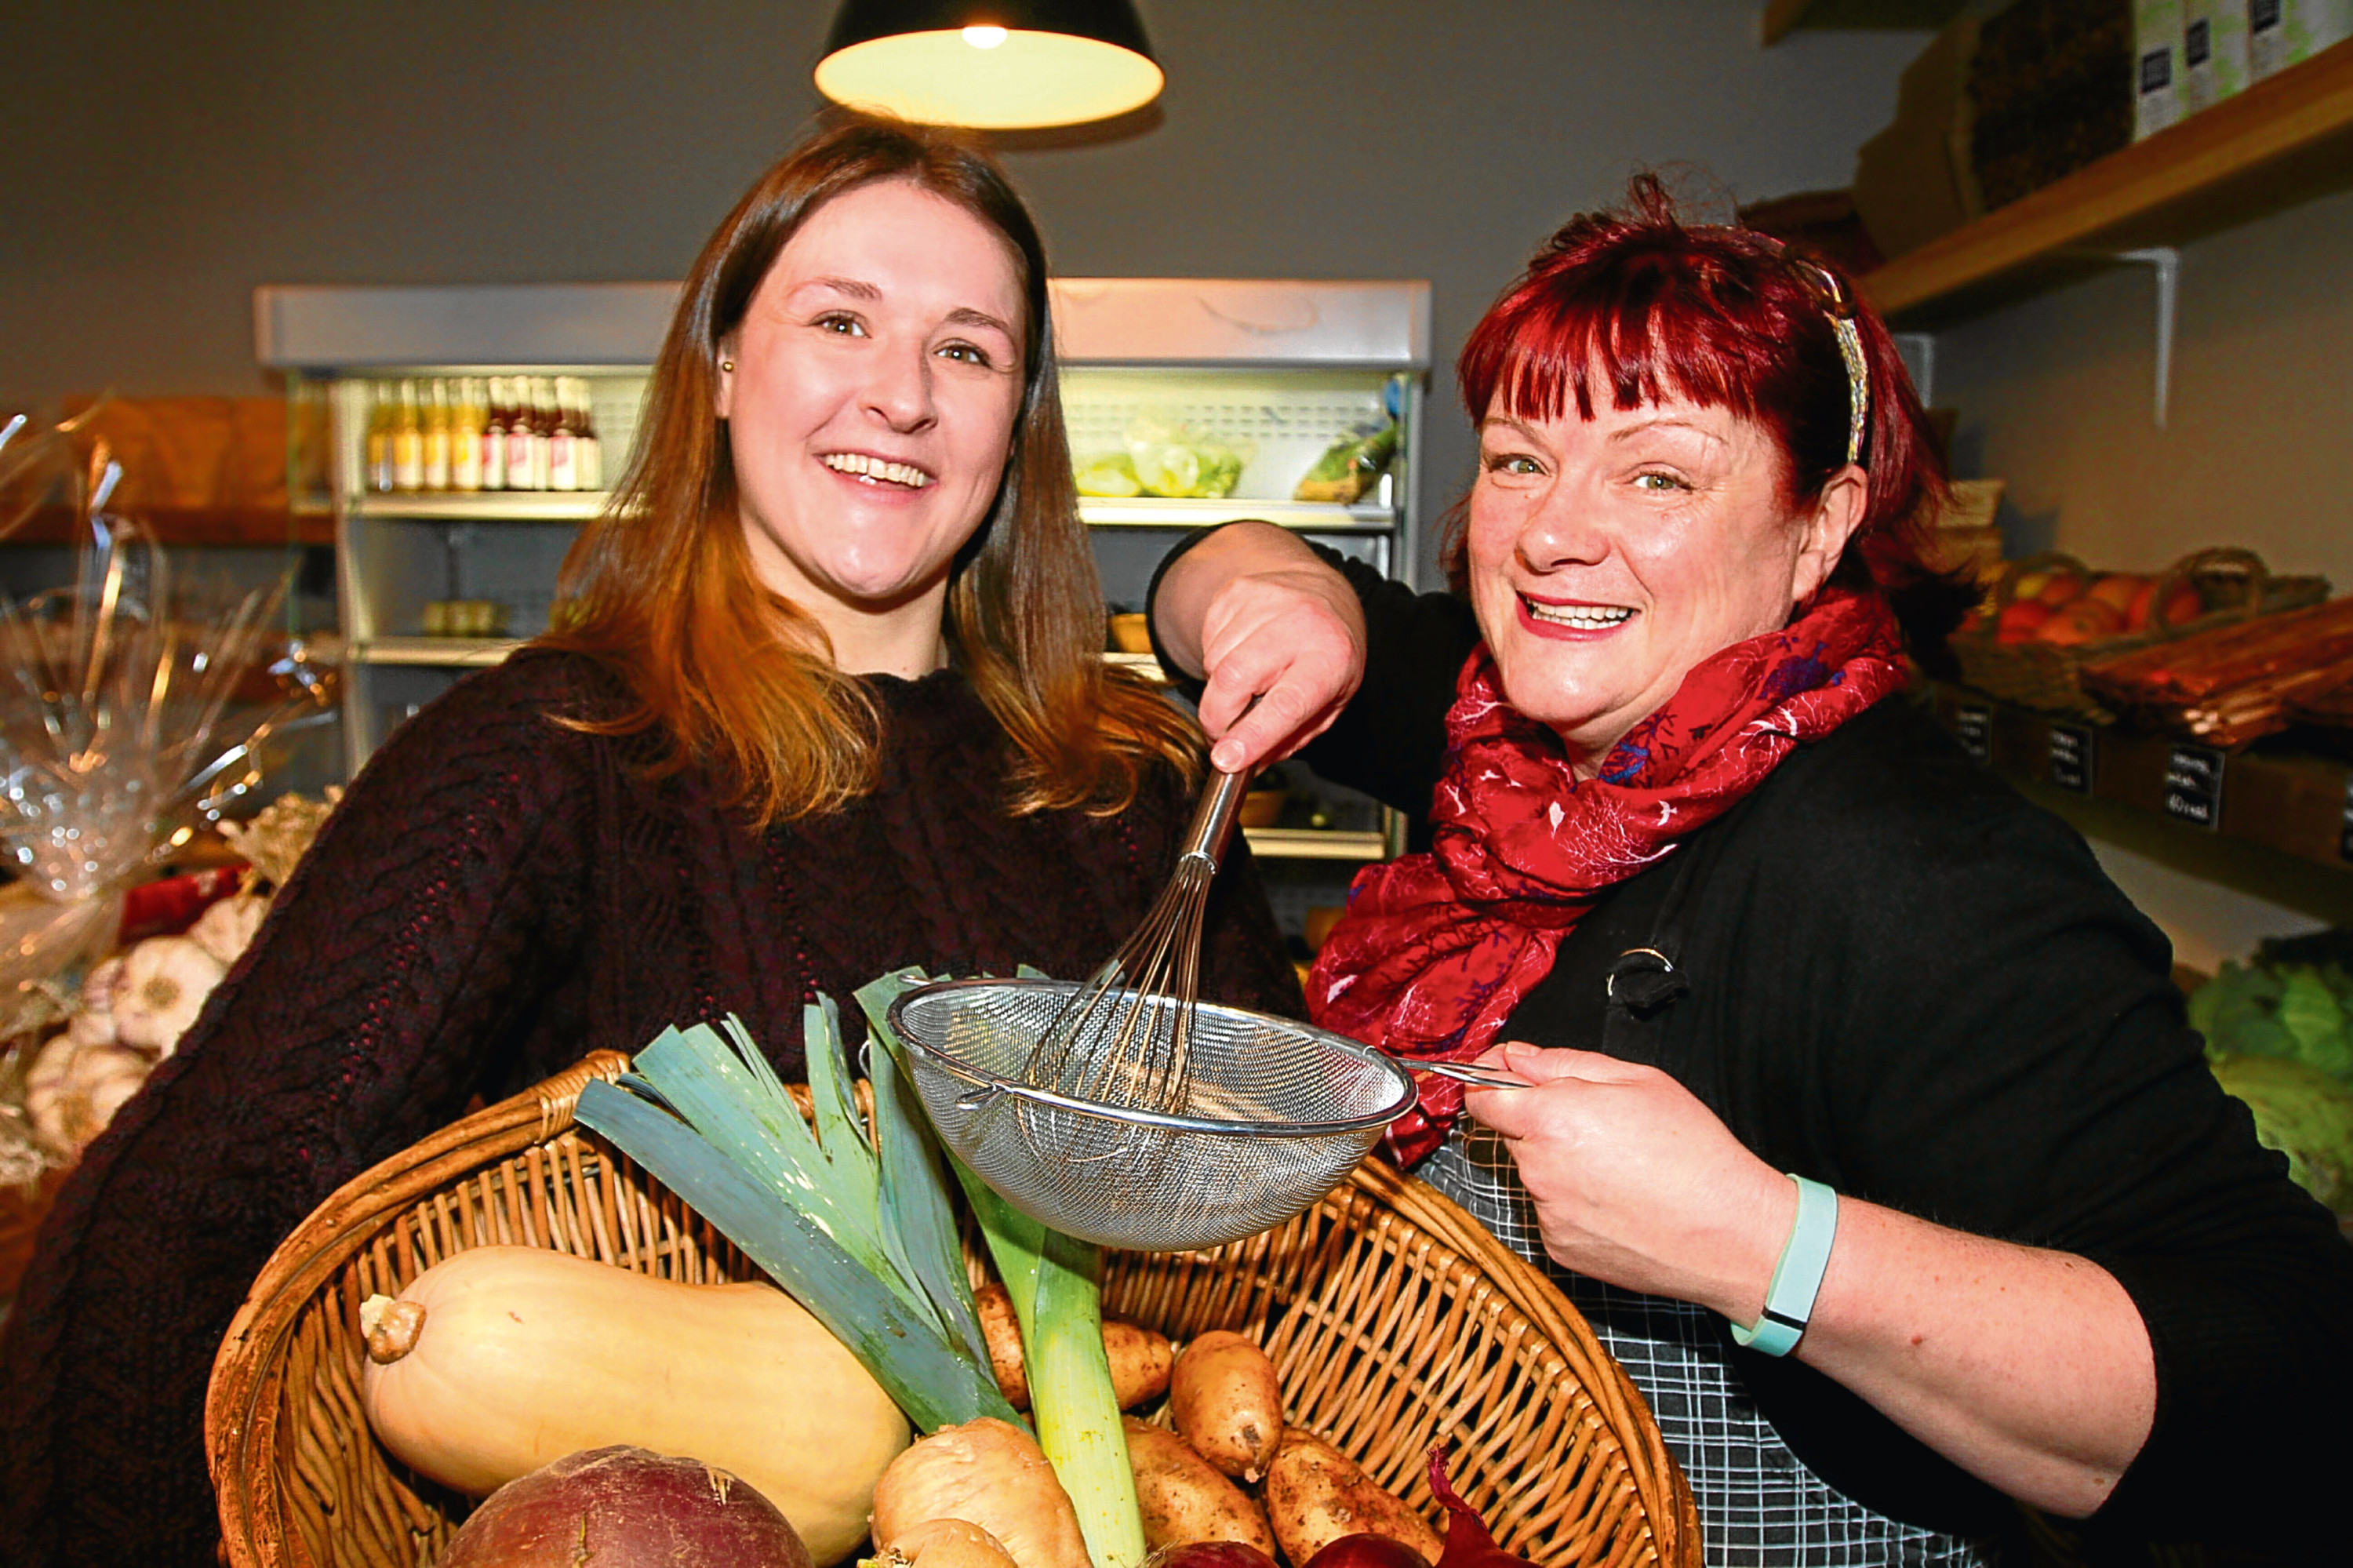 Bethany Bowles from Gather and Libby McAinsh from Two Sisters Cafe, who both had visits from contestants in the Great British Bake Off.